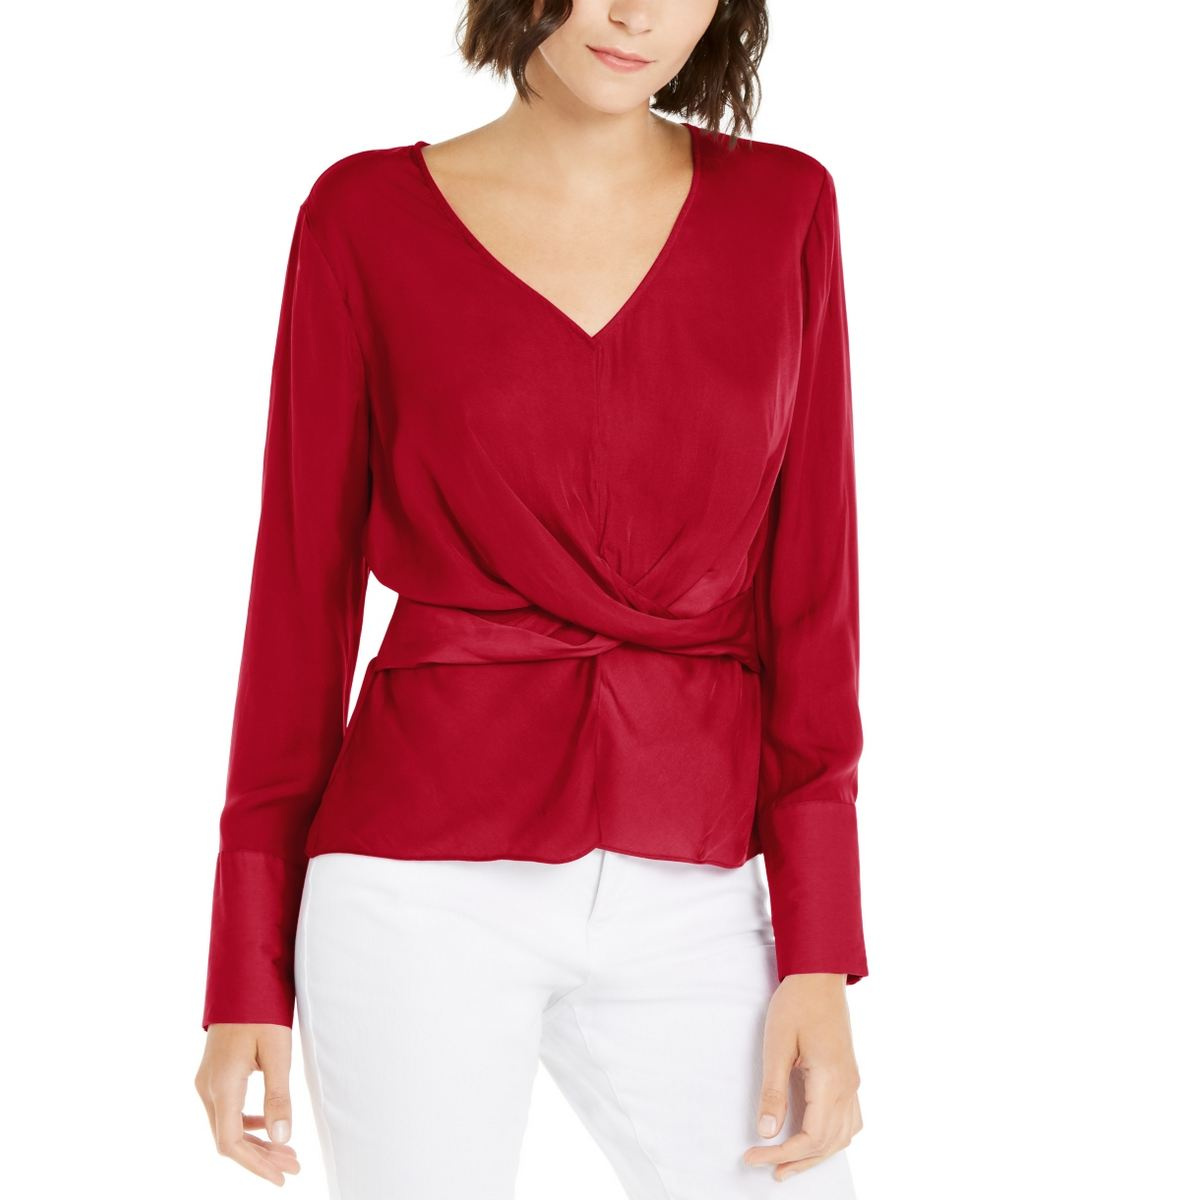 INC NEW Women/'s Solid Twist-front V-neck Blouse Shirt Top TEDO